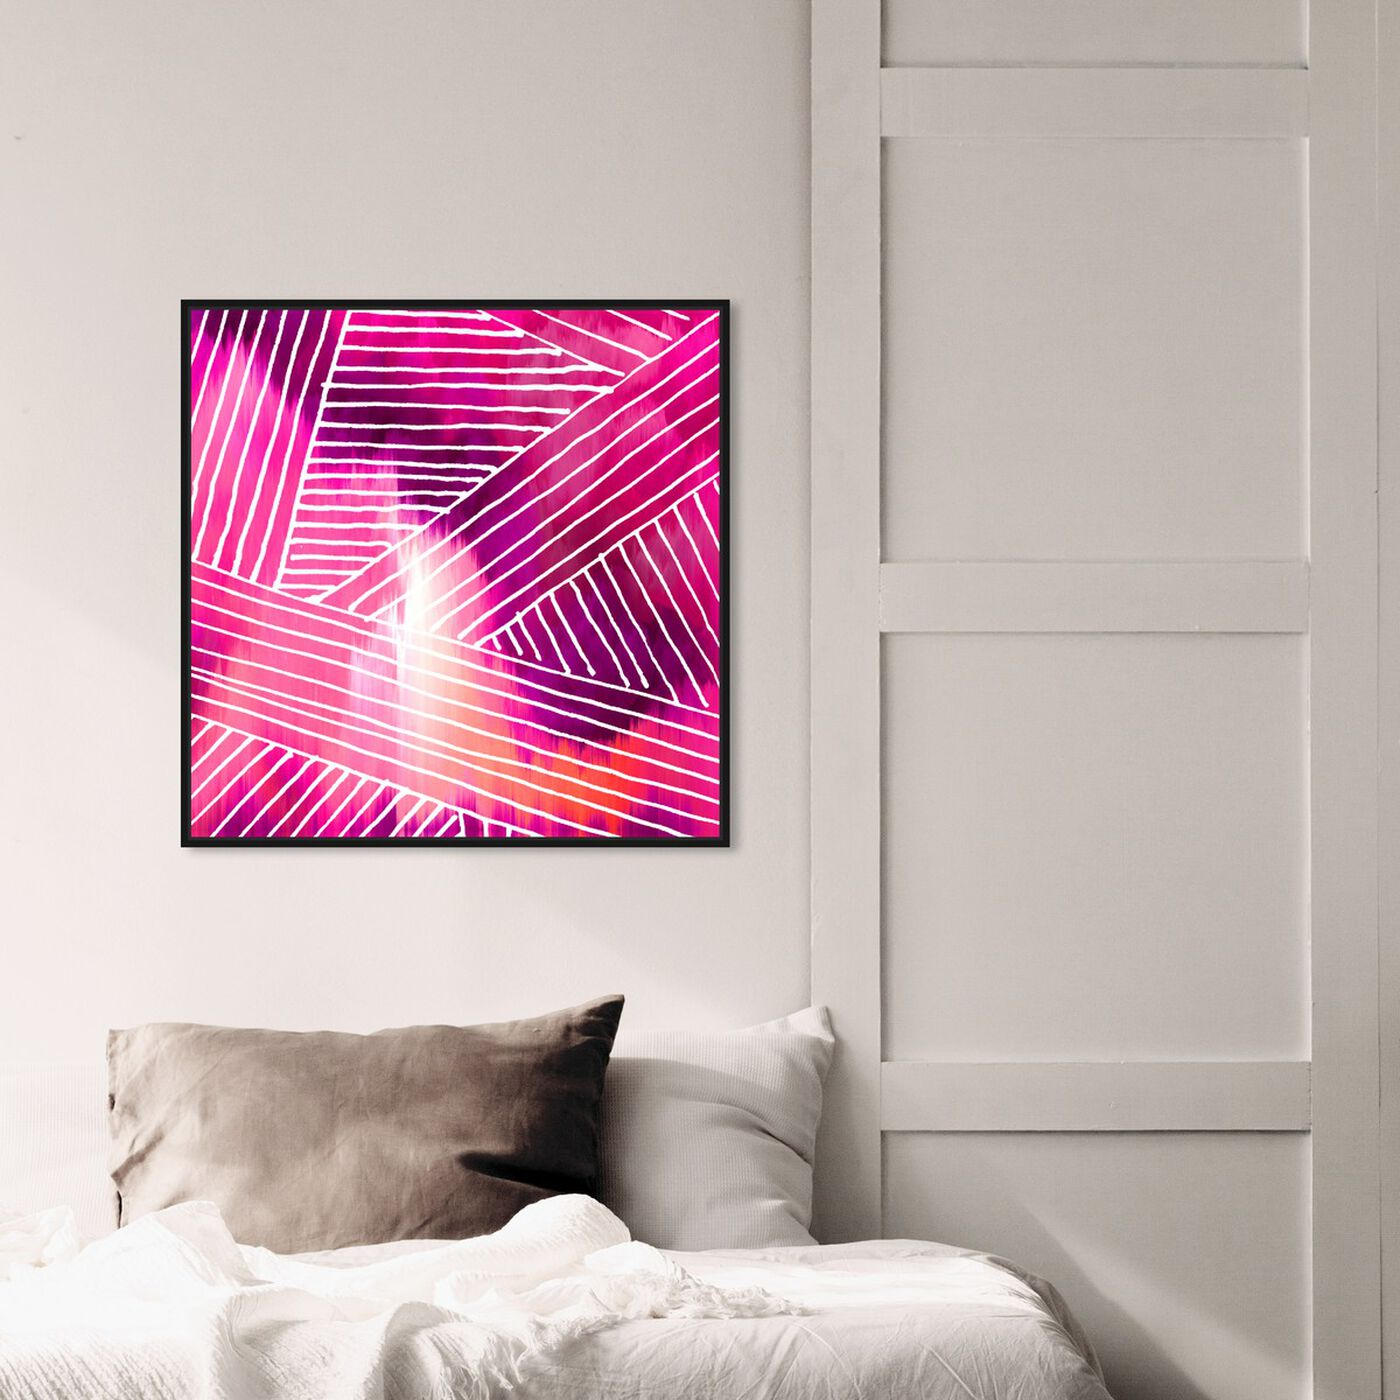 Hanging view of Chella featuring abstract and shapes art.